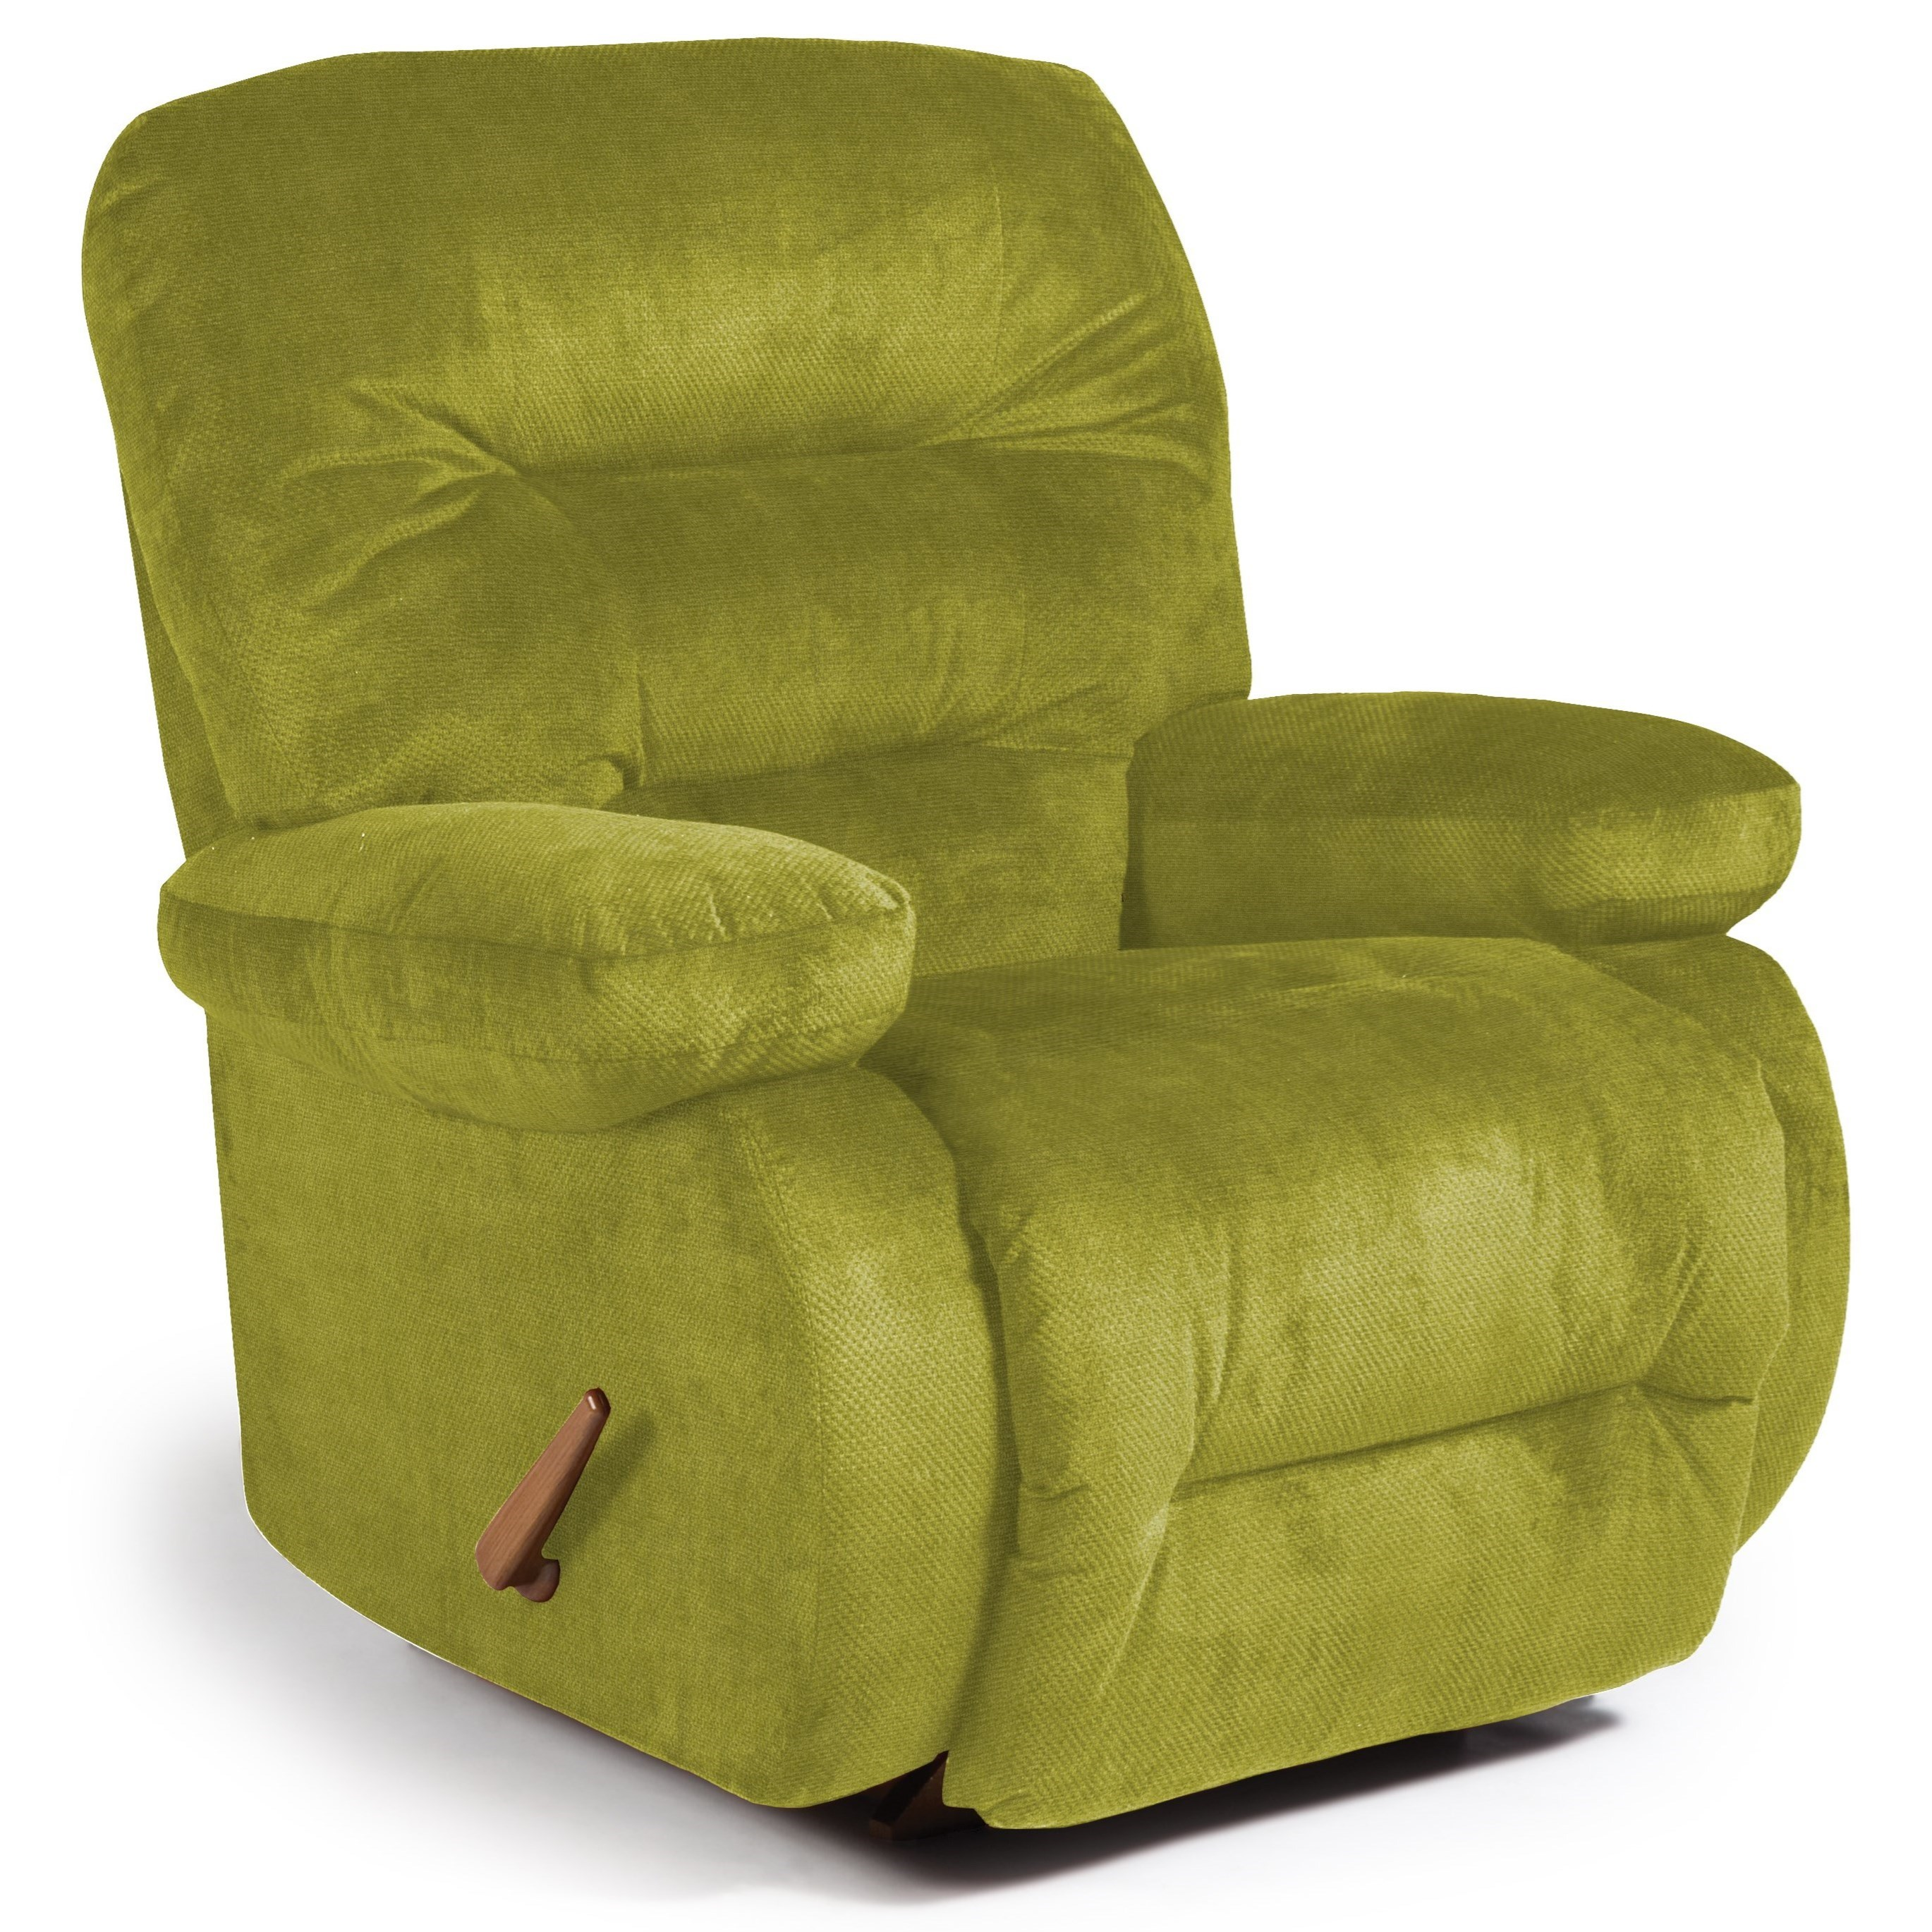 Medium Recliners Maddox Space Saver Recliner by Best Home Furnishings at A1 Furniture & Mattress